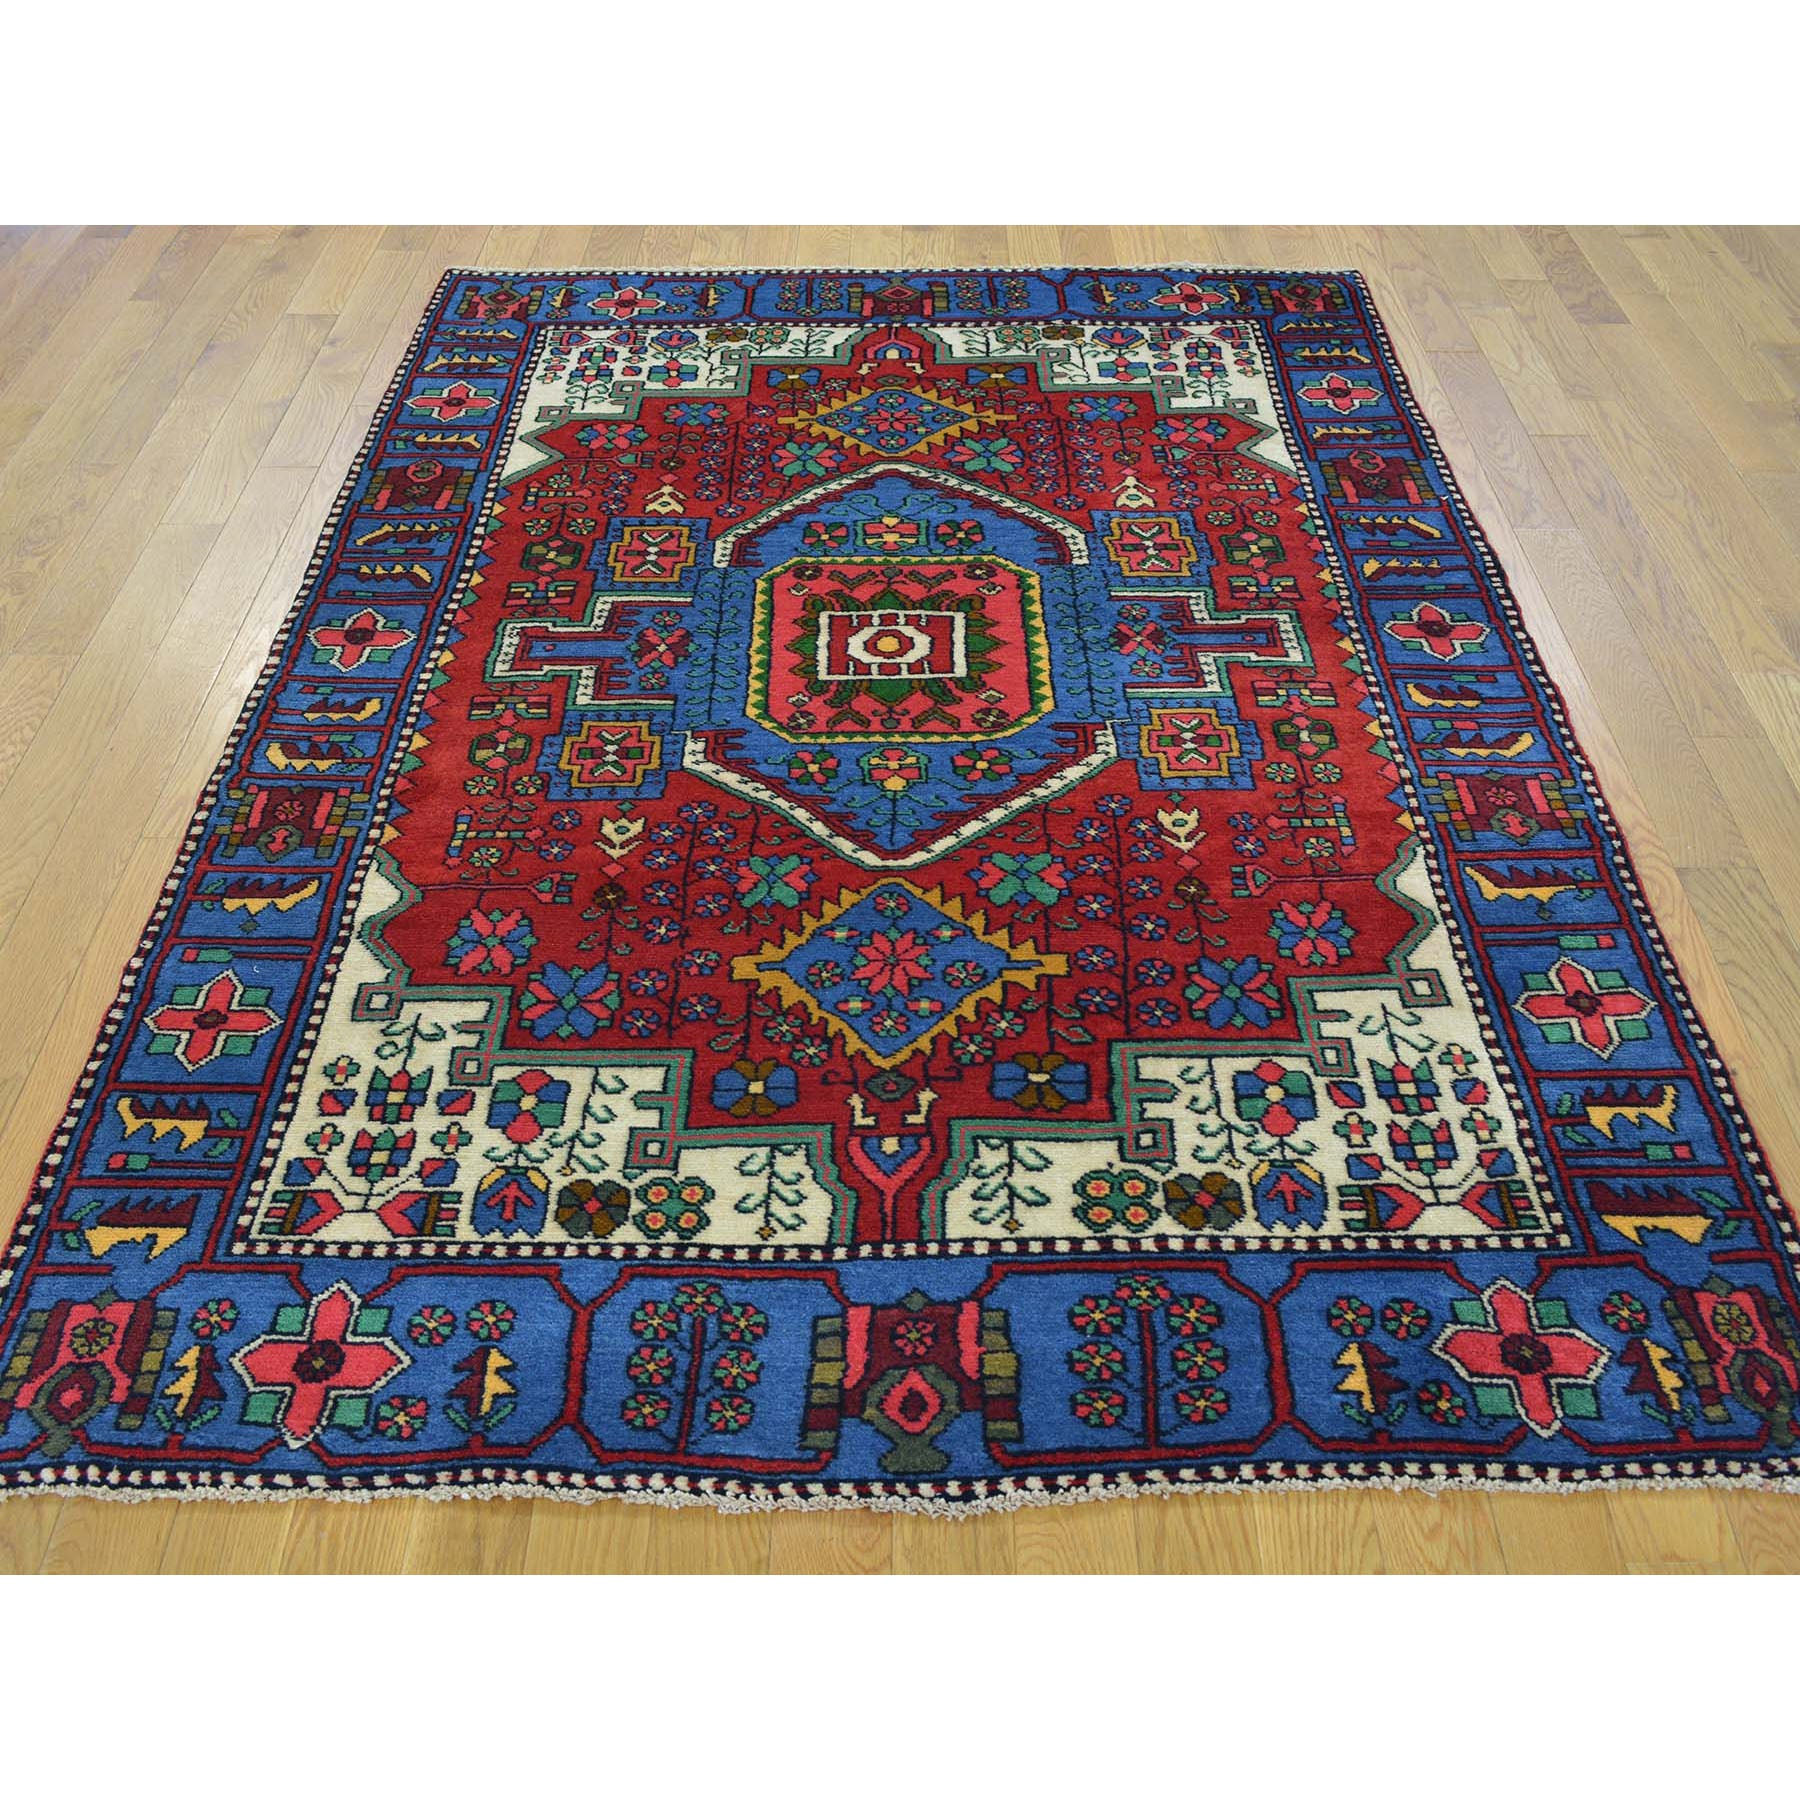 "Handmade Persian Rectangle Rug > Design# SH24583 > Size: 4'-6"" x 6'-6"" [ONLINE ONLY]"